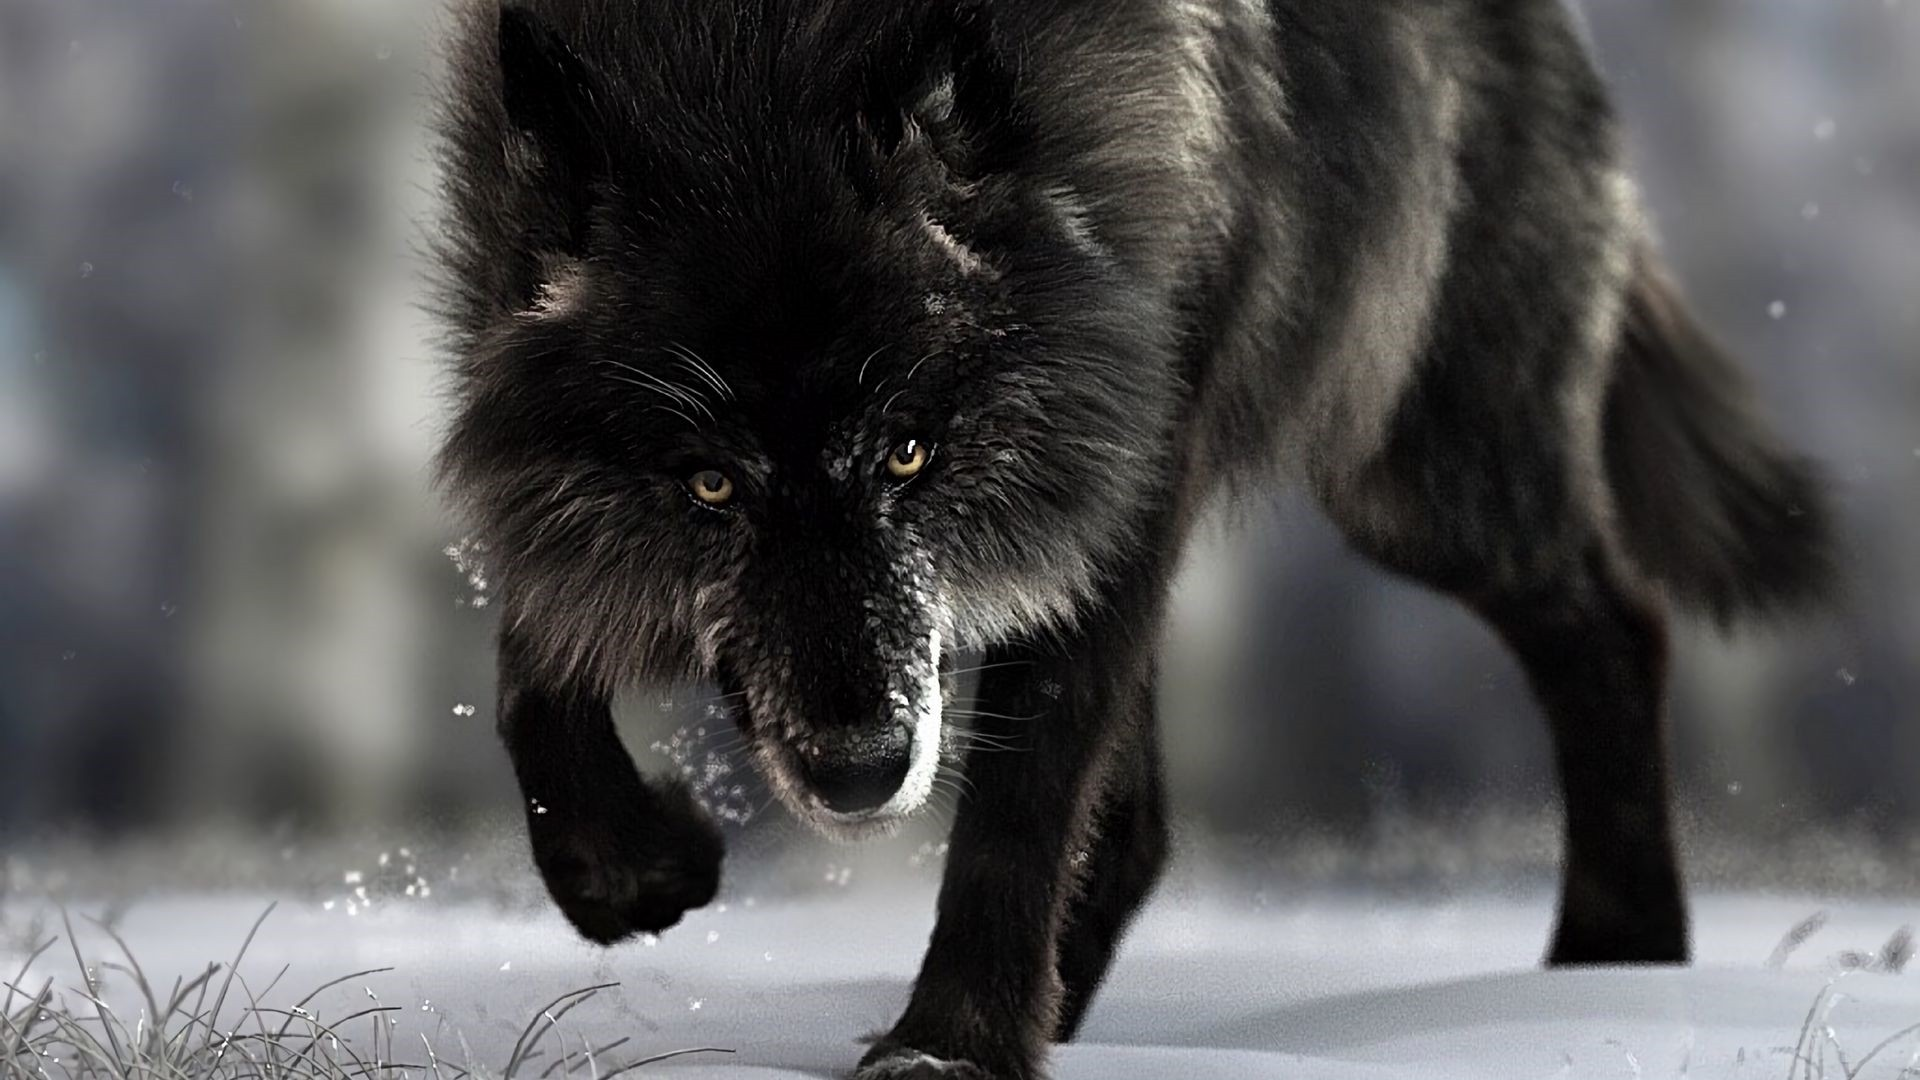 Black Wolf Wallpaper image hd